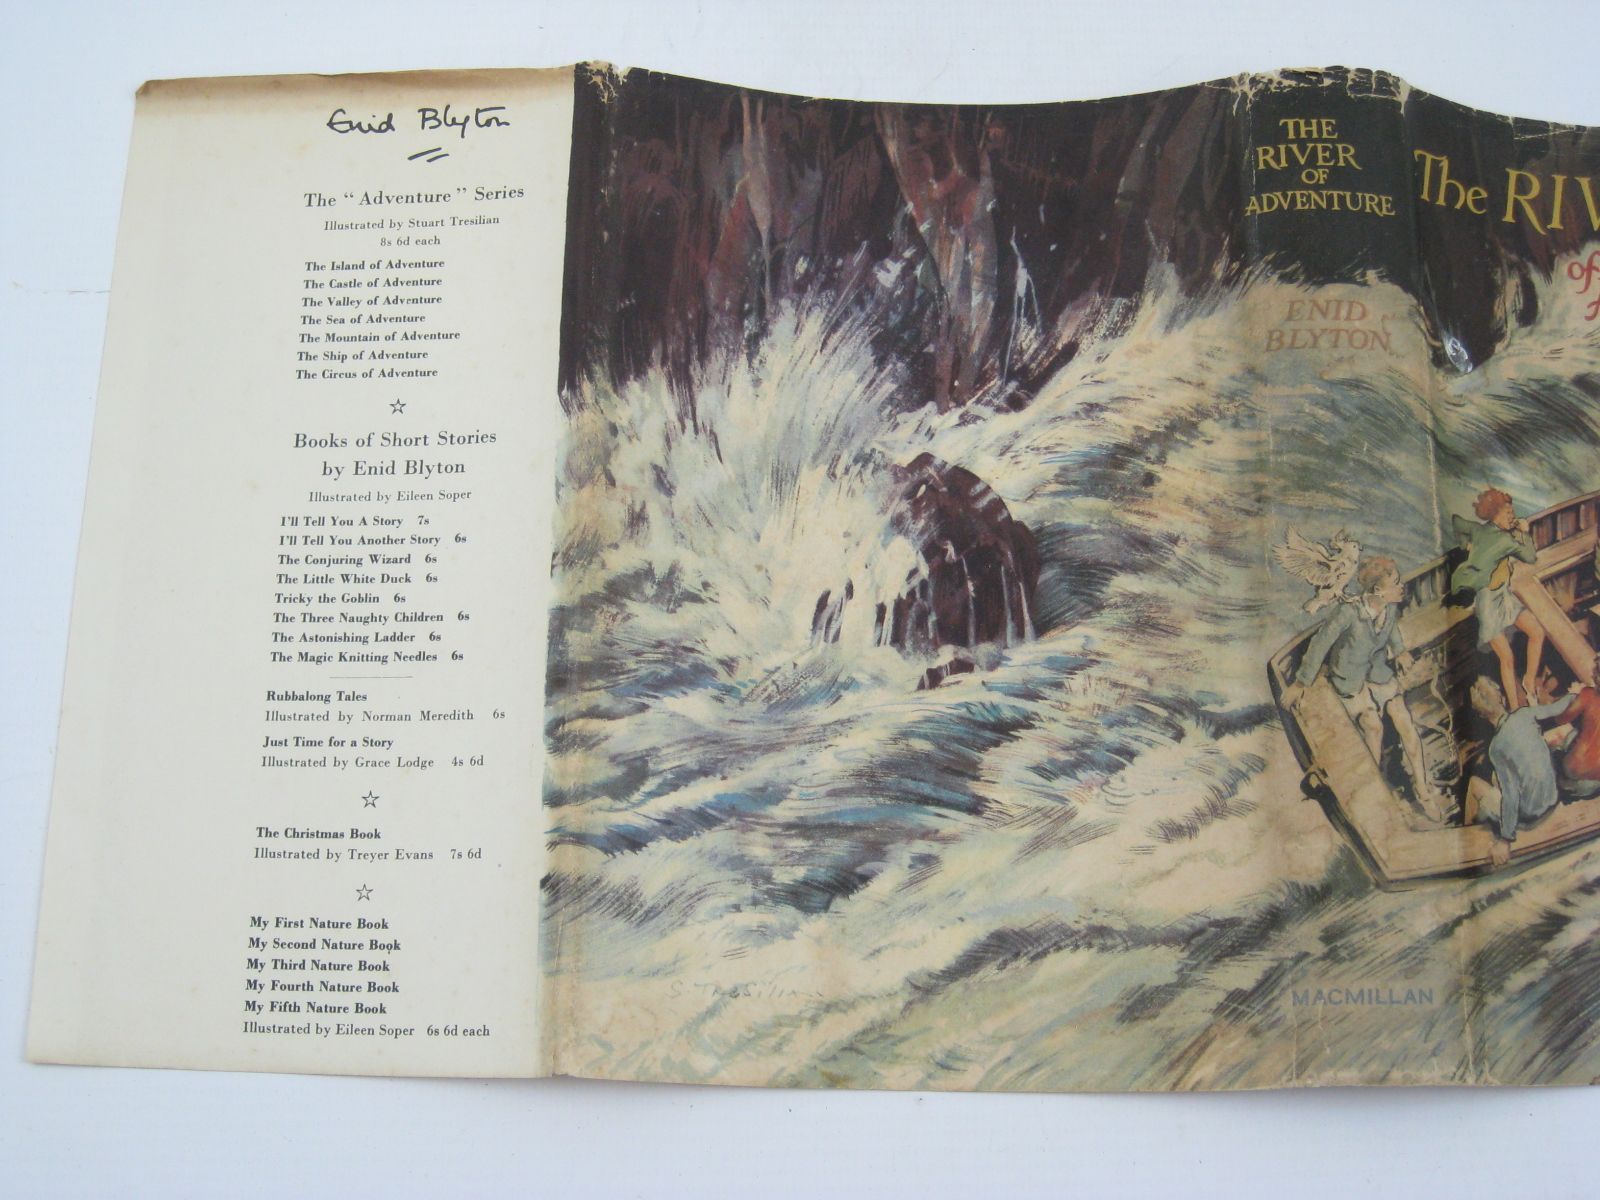 Photo of THE RIVER OF ADVENTURE written by Blyton, Enid illustrated by Tresilian, Stuart published by Macmillan & Co. Ltd. (STOCK CODE: 1316497)  for sale by Stella & Rose's Books